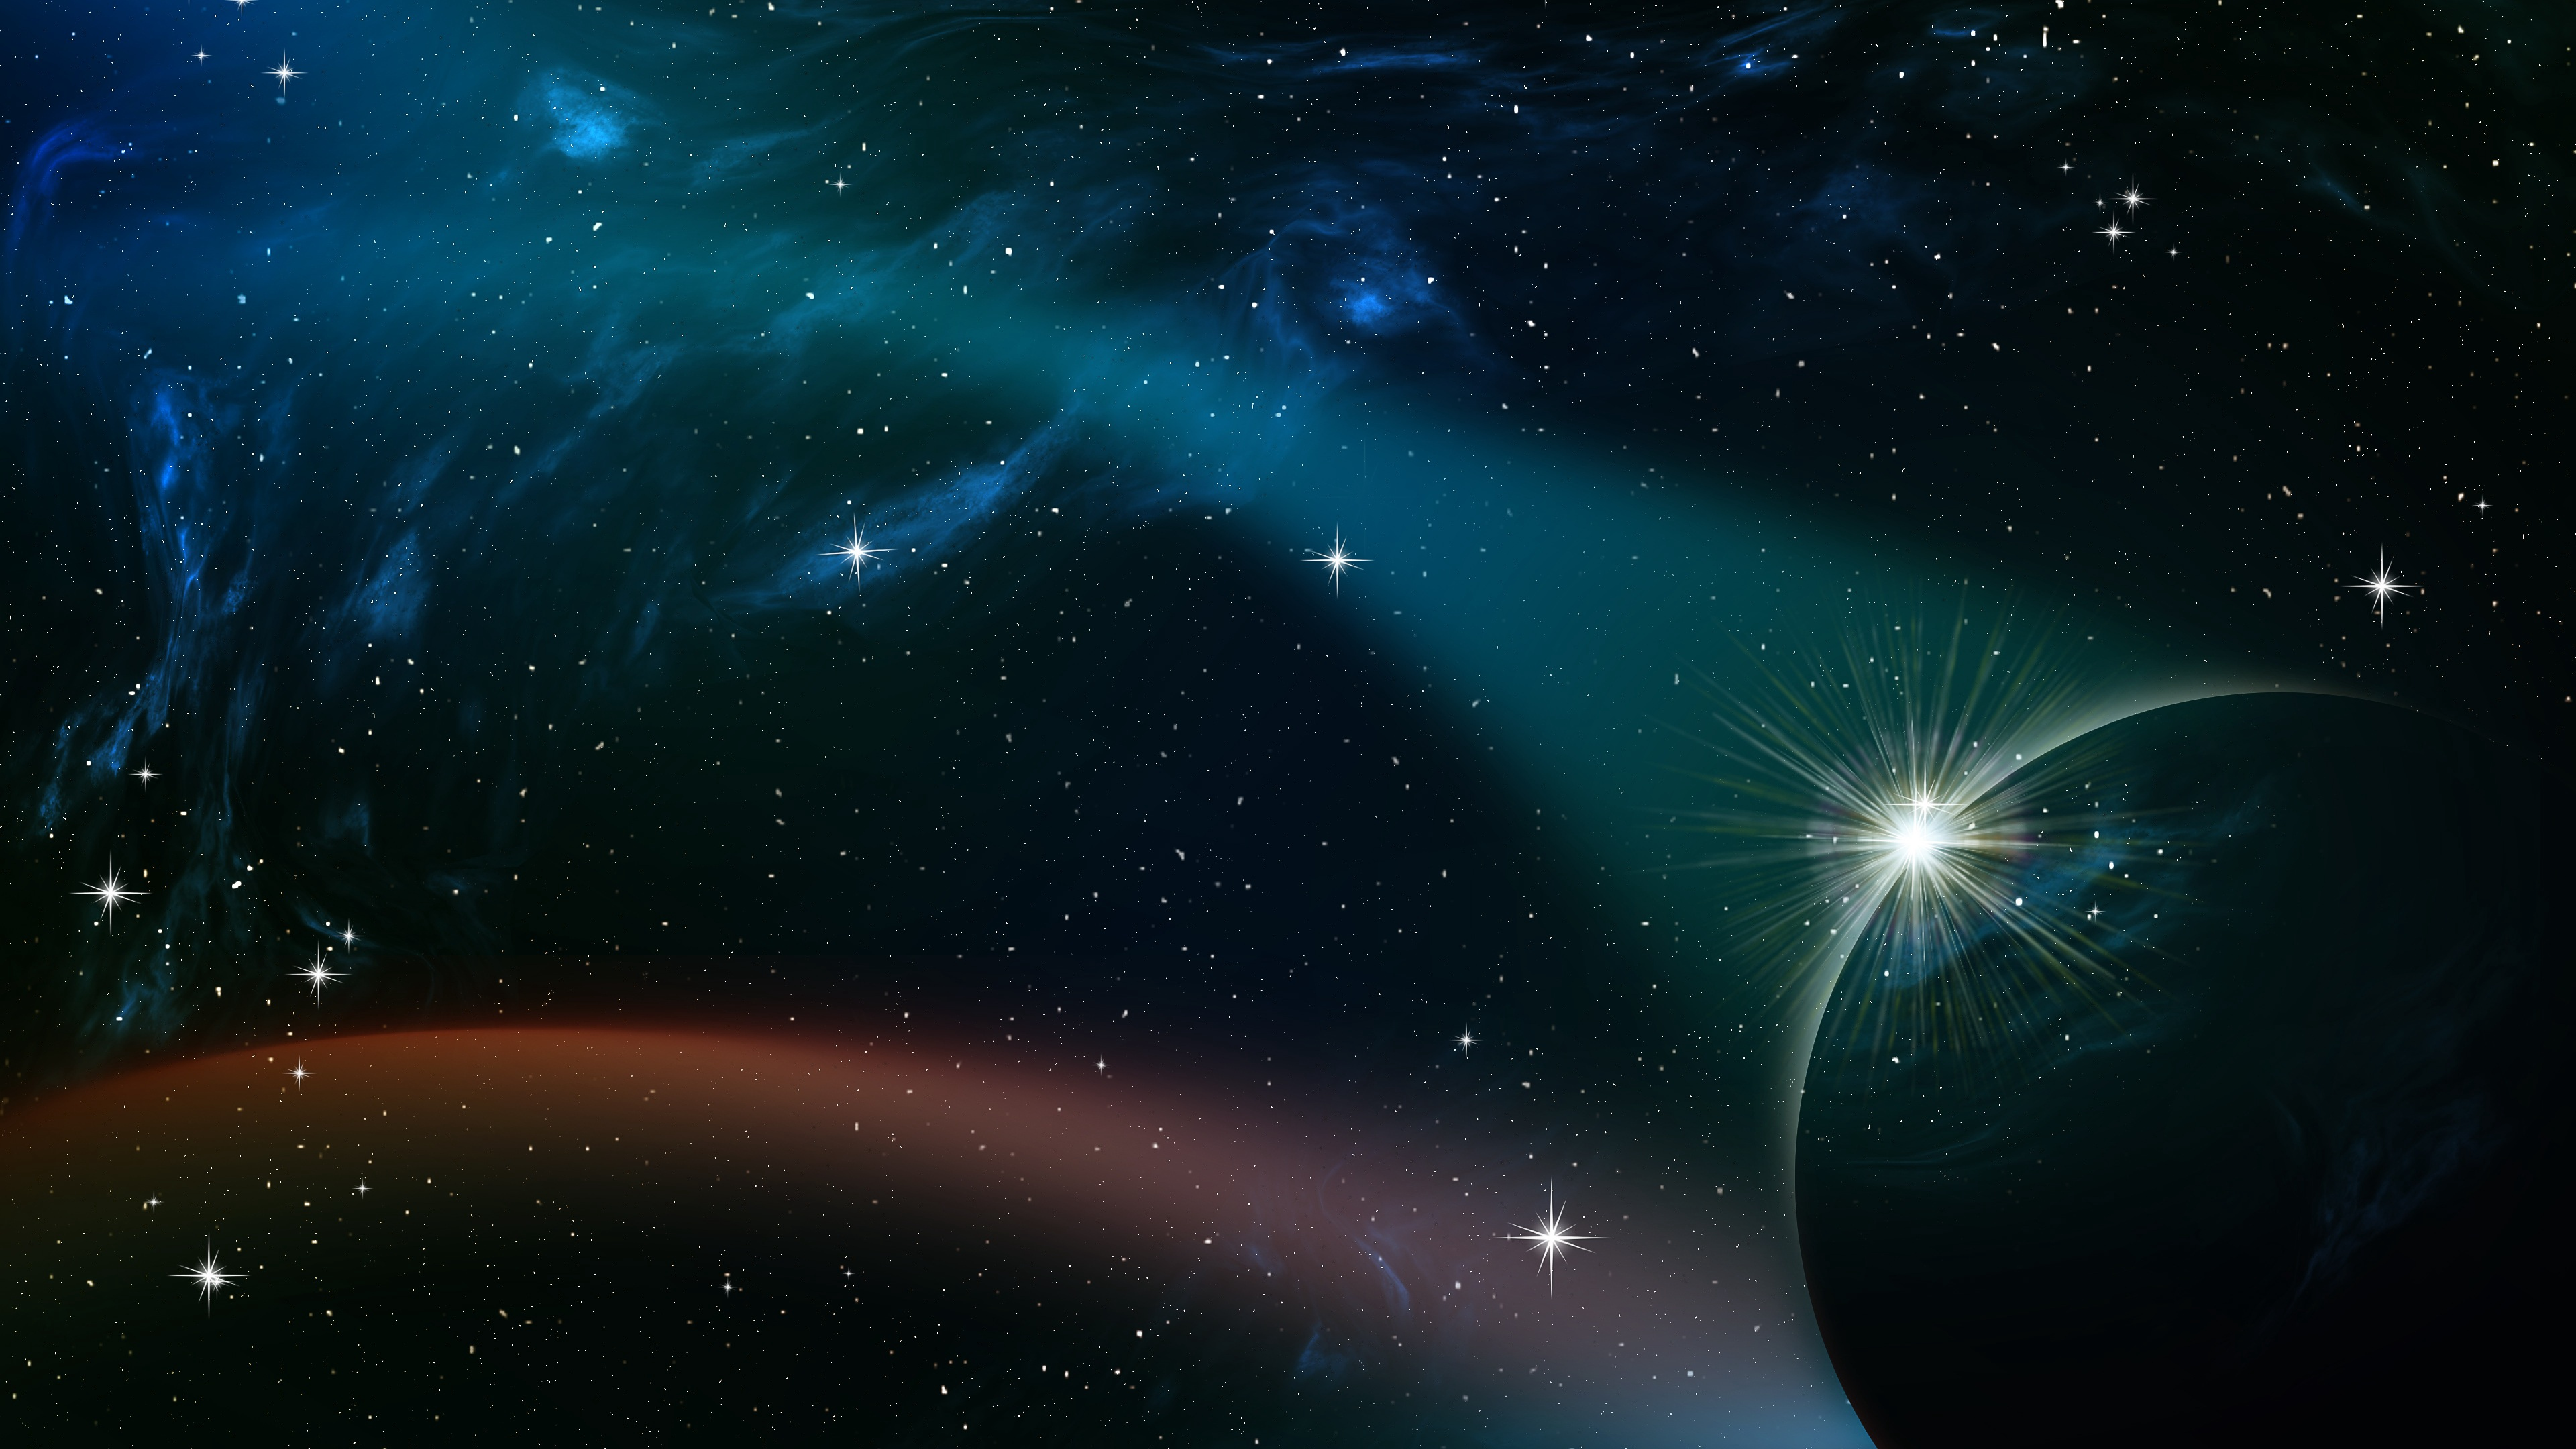 space sky planets stars moons 4k 1536016946 - space, sky, planets, stars, moons 4k - Space, Sky, Planets